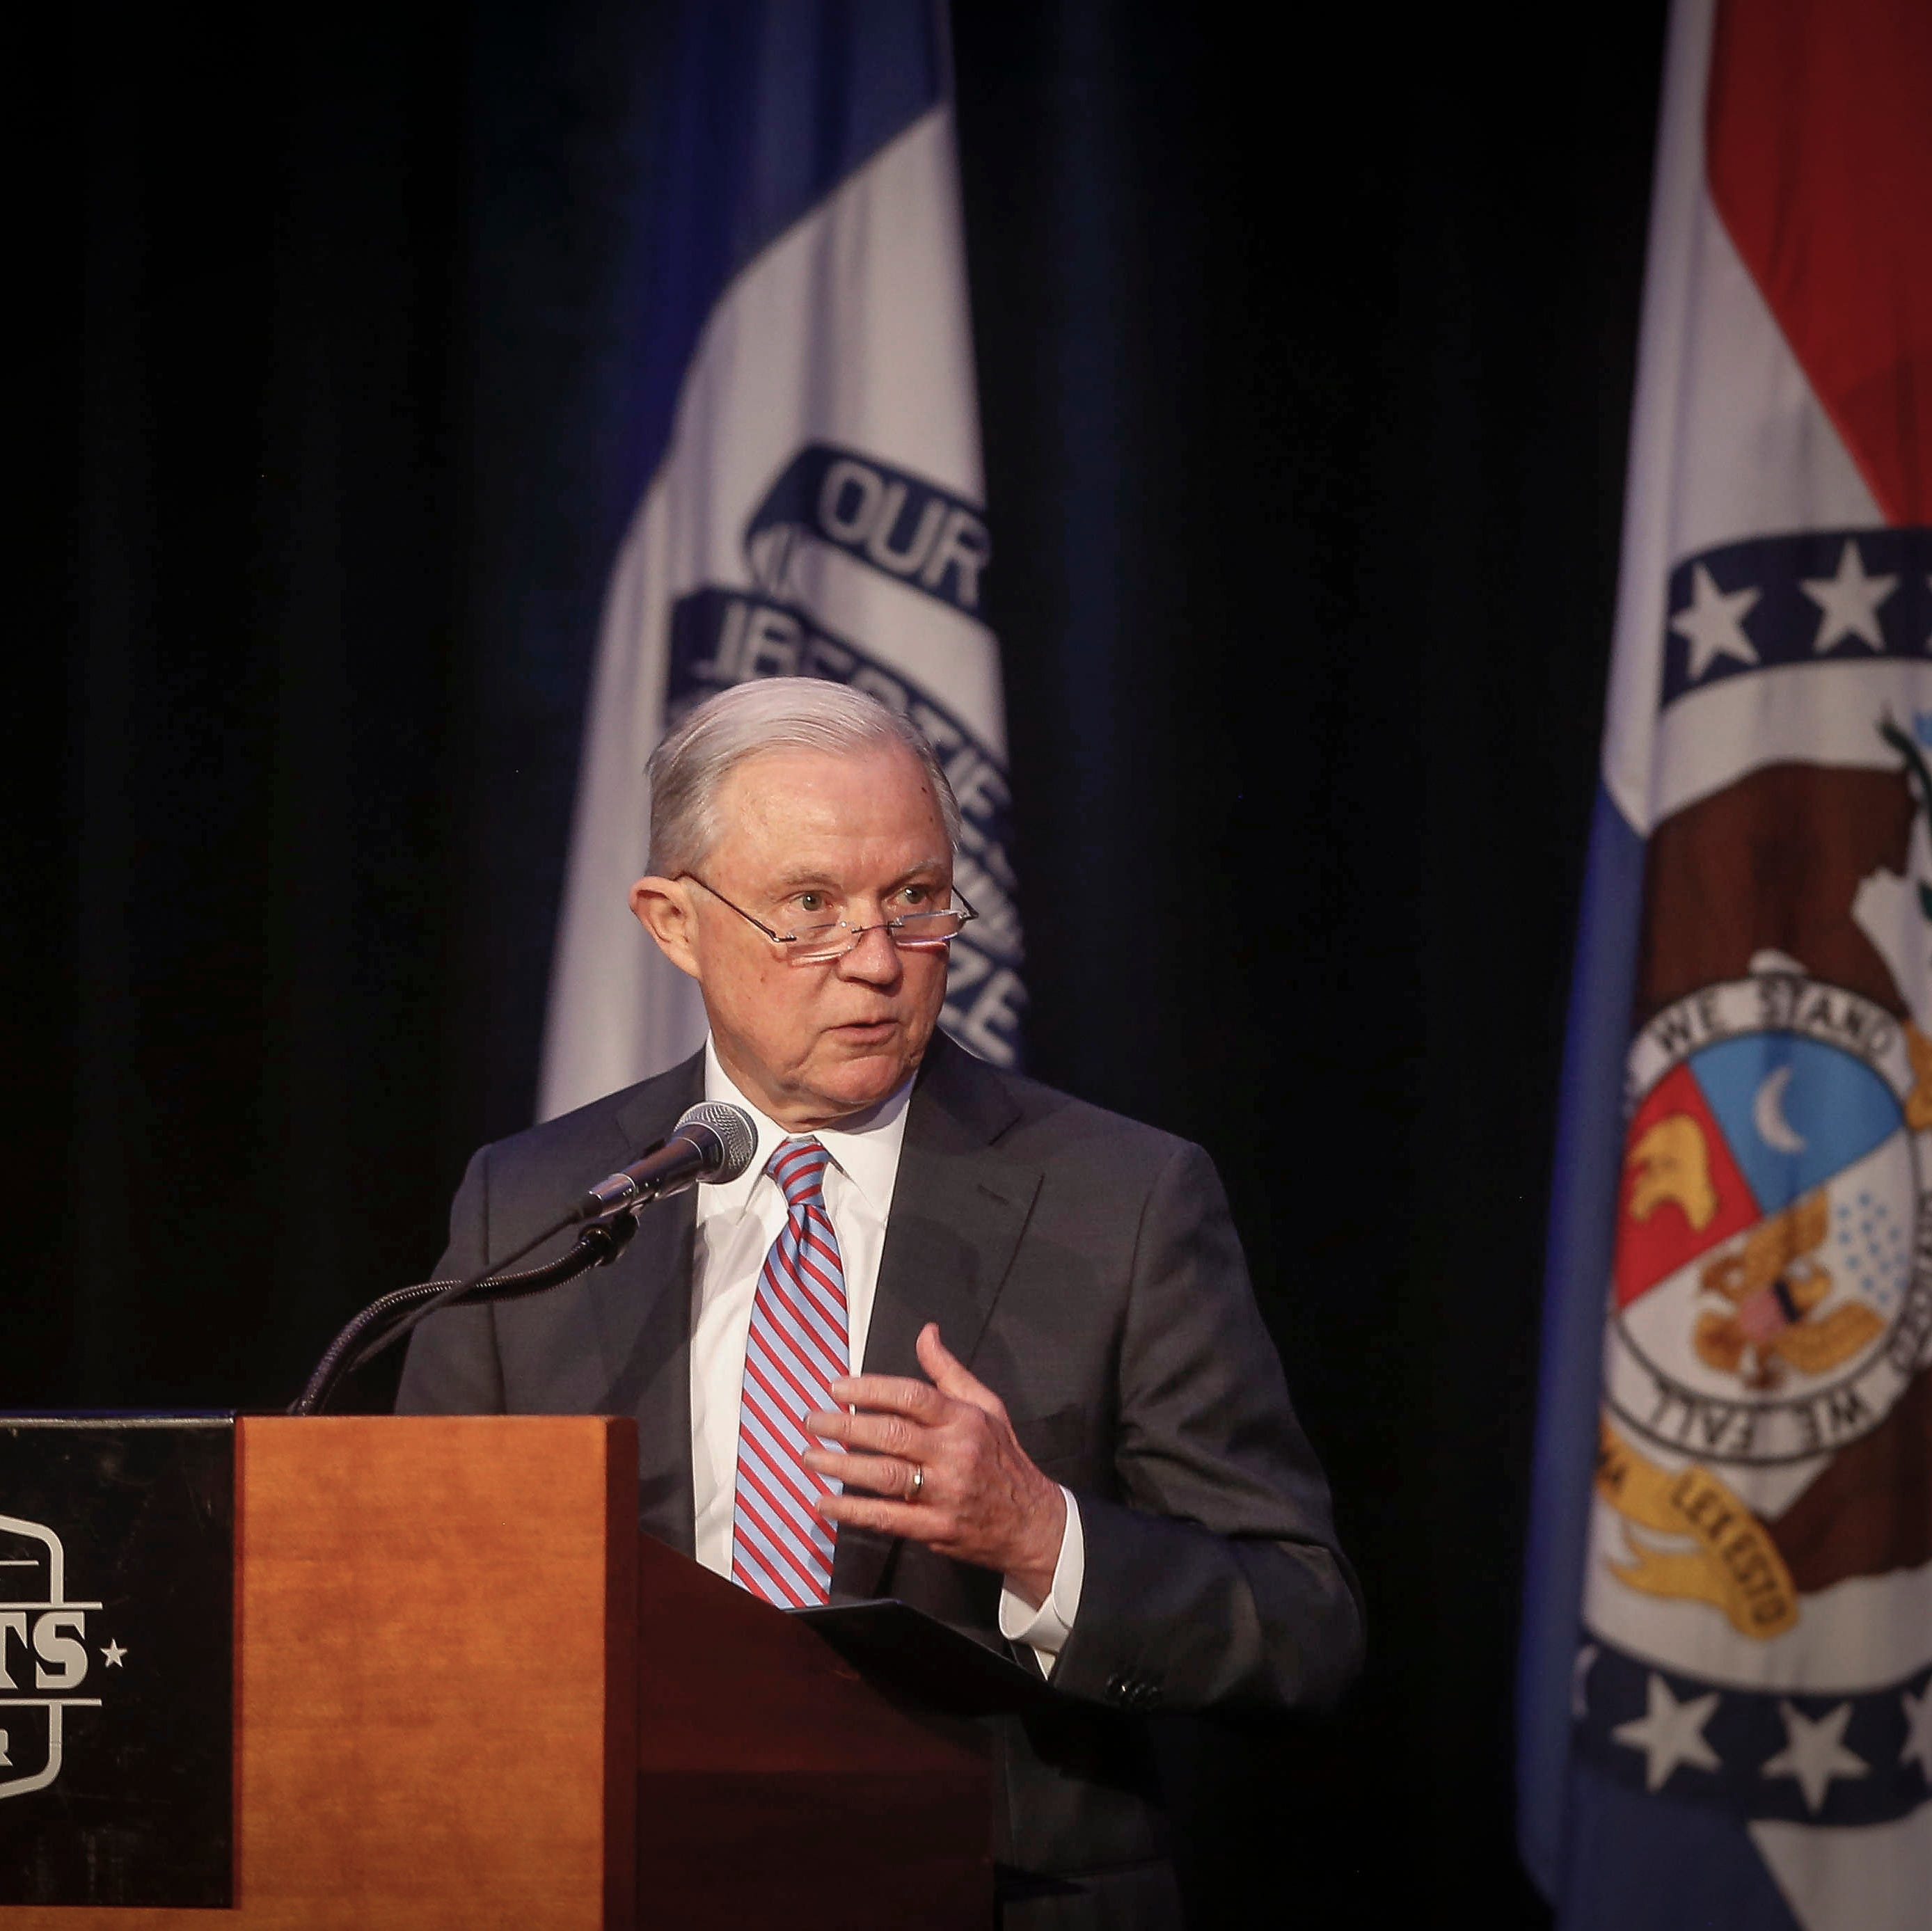 United States Attorney General Jeff Sessions speaks during the Eighth Circuit Judicial Conference on Friday, Aug. 17, 2018, in Des Moines.